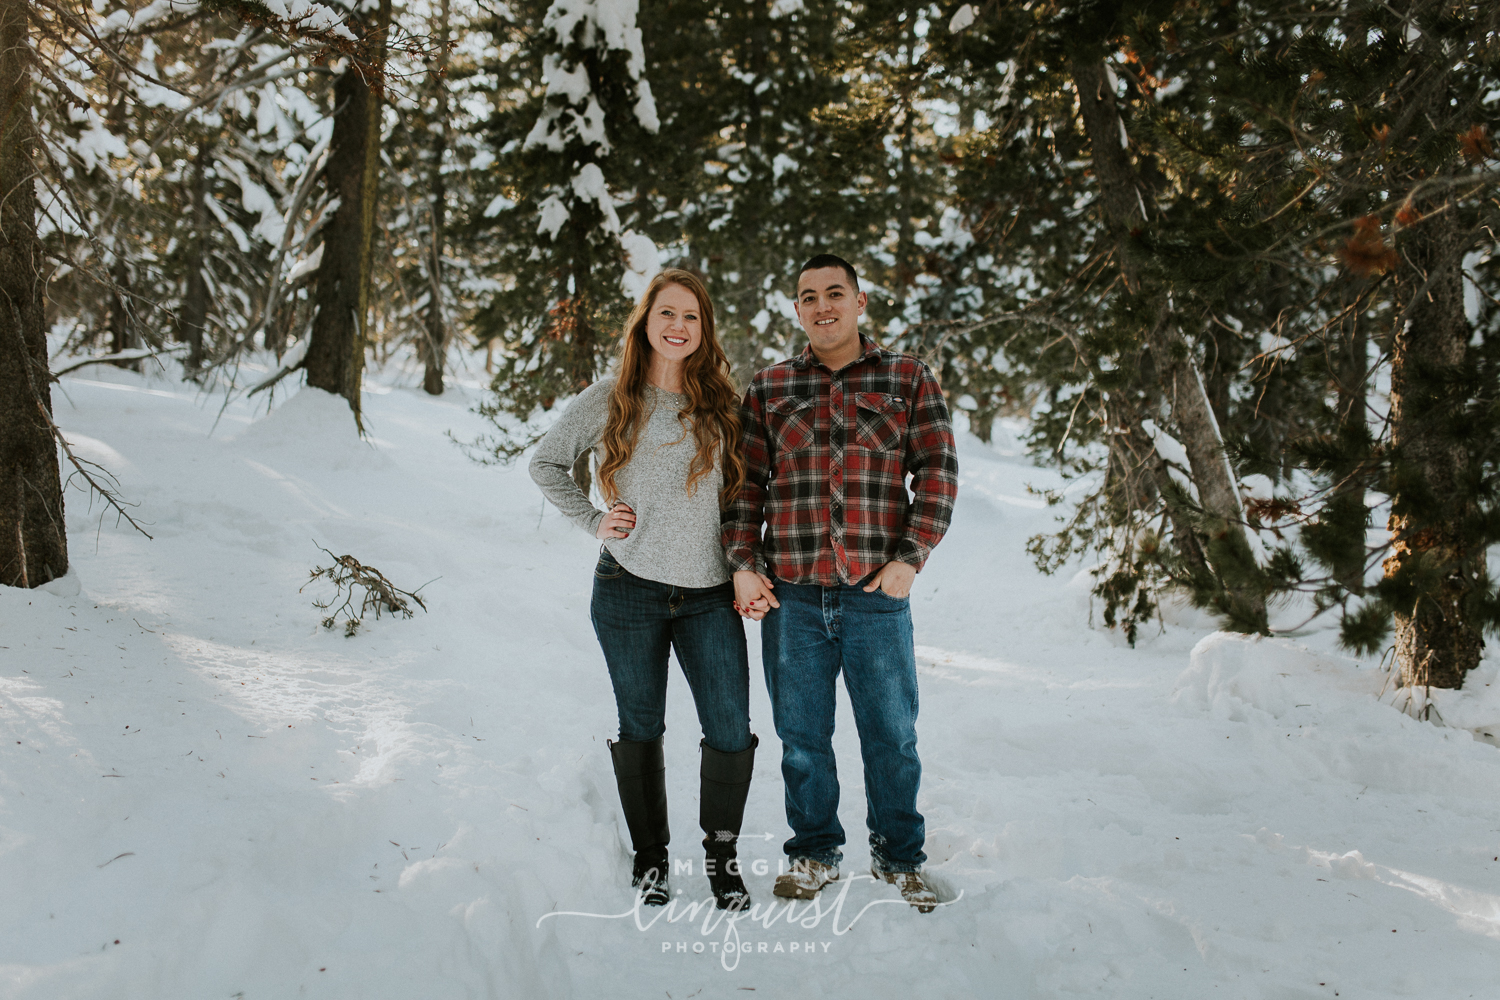 snow-family-photos-reno-lake-tahoe-photographer-8.jpg